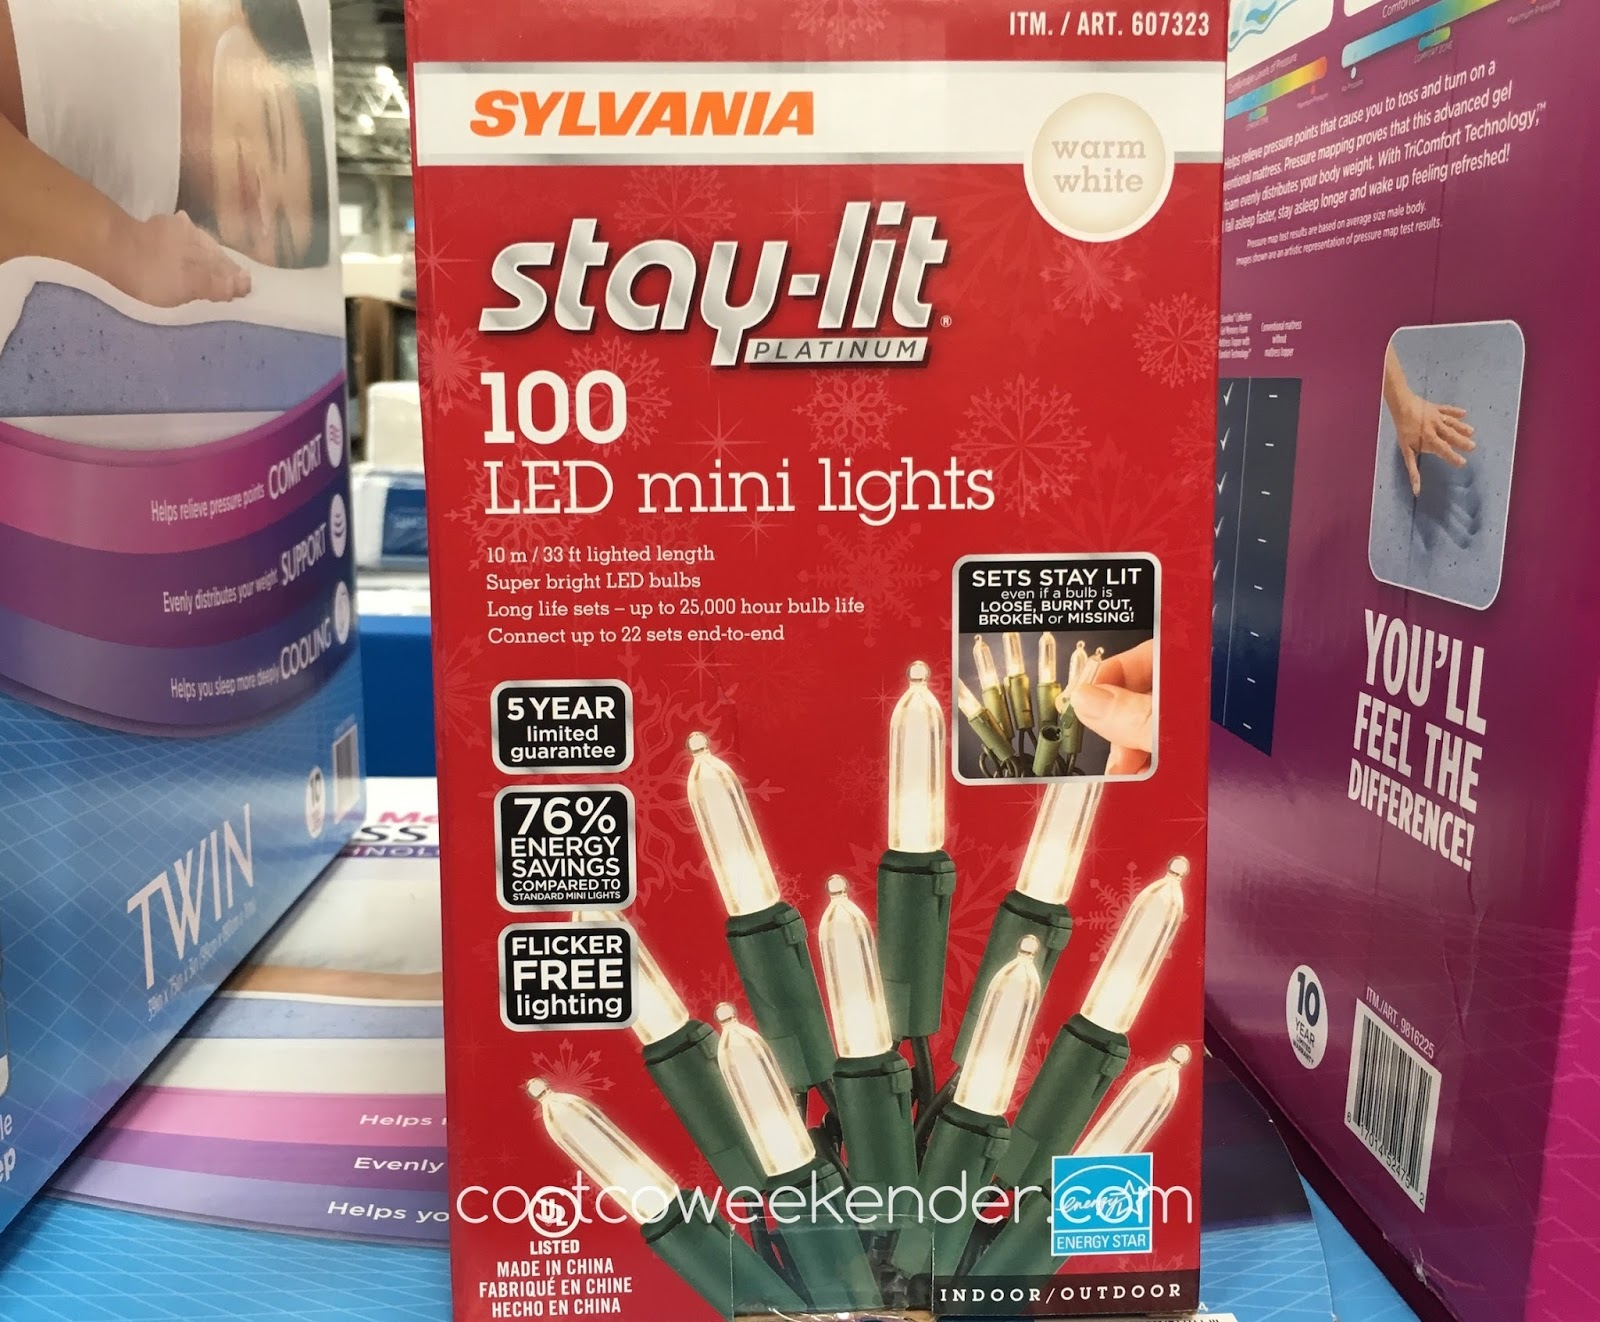 Sylvania Stay-lit 100 LED Mini Lights - Sets stay lit even if a bulb is loose, burnt out, broken or missing